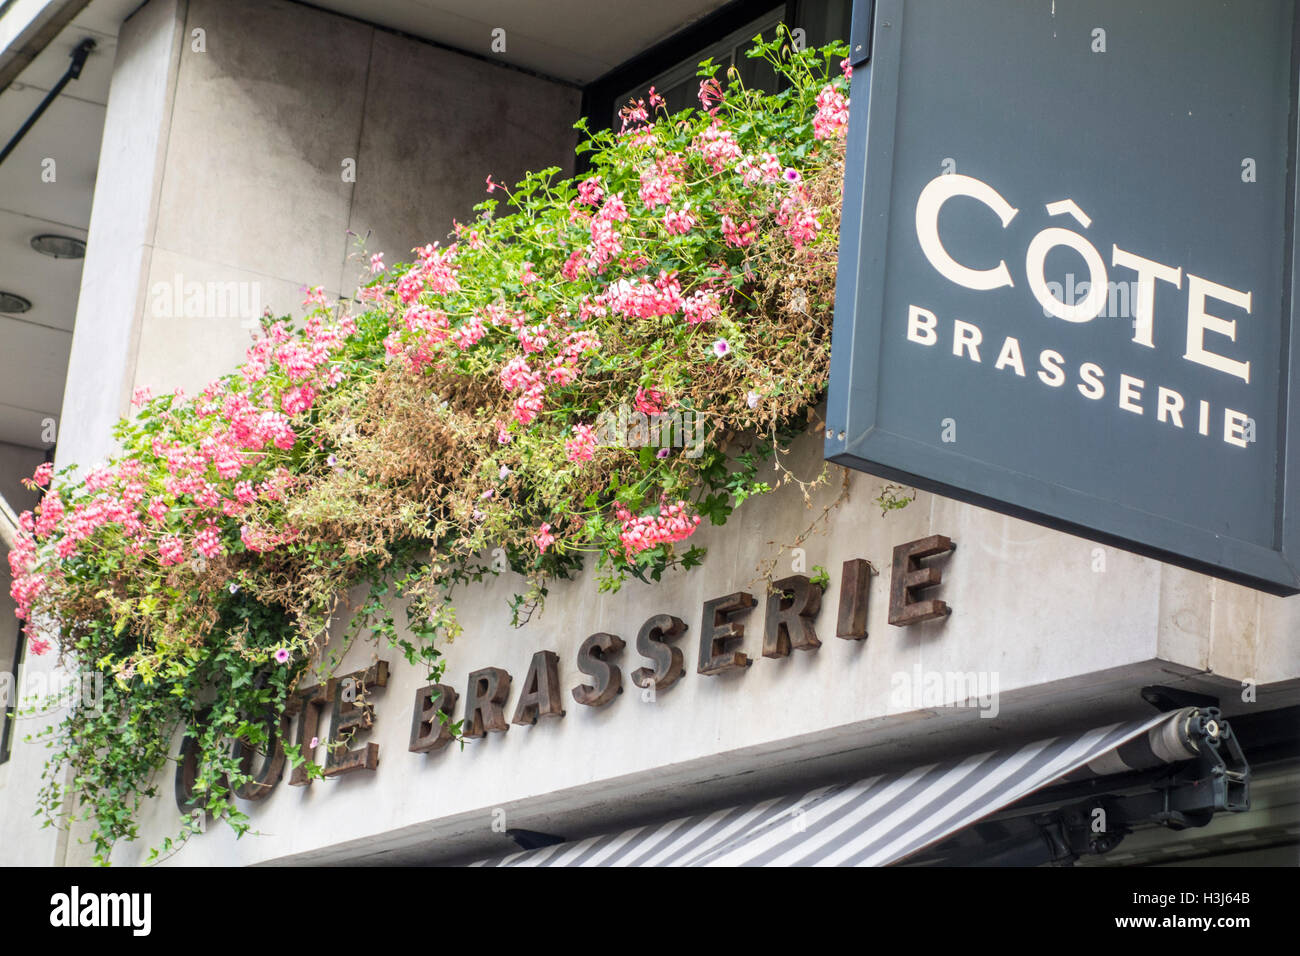 Cote Brasserie sign, London, Ludgate Hill, UK - Stock Image